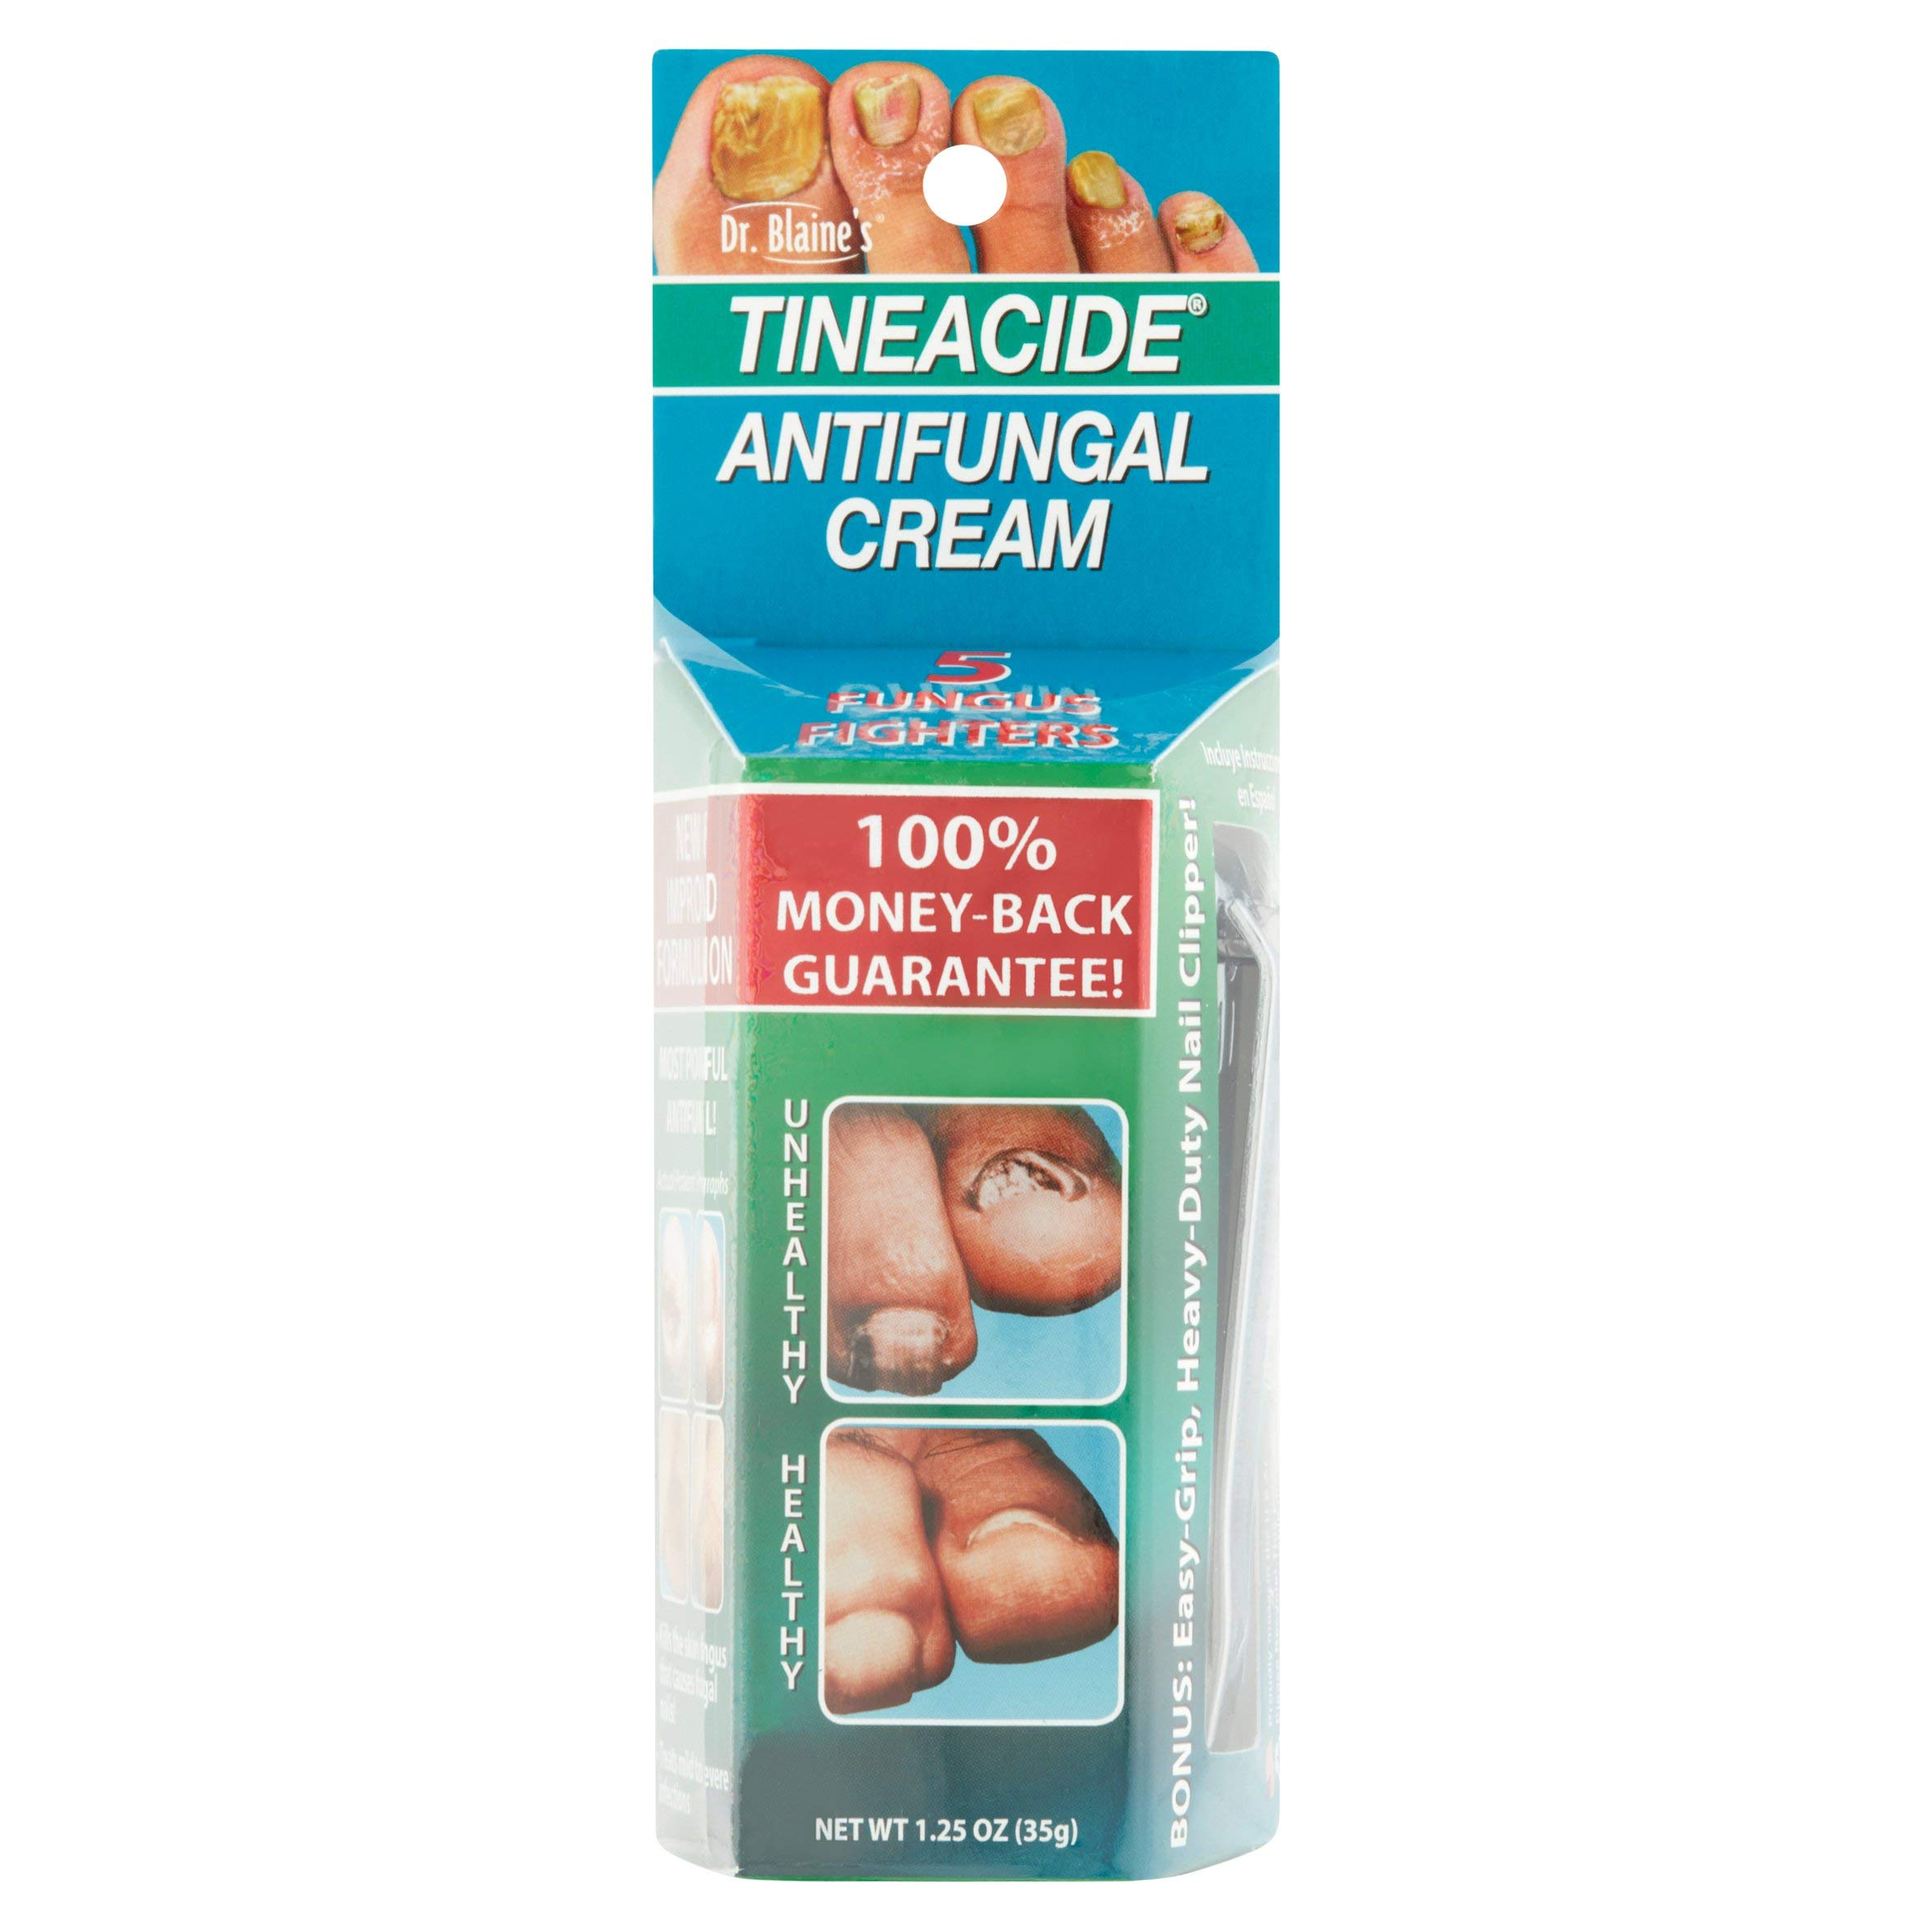 Tineacide Antifungal Cream, Pack of 4 by Tineacide